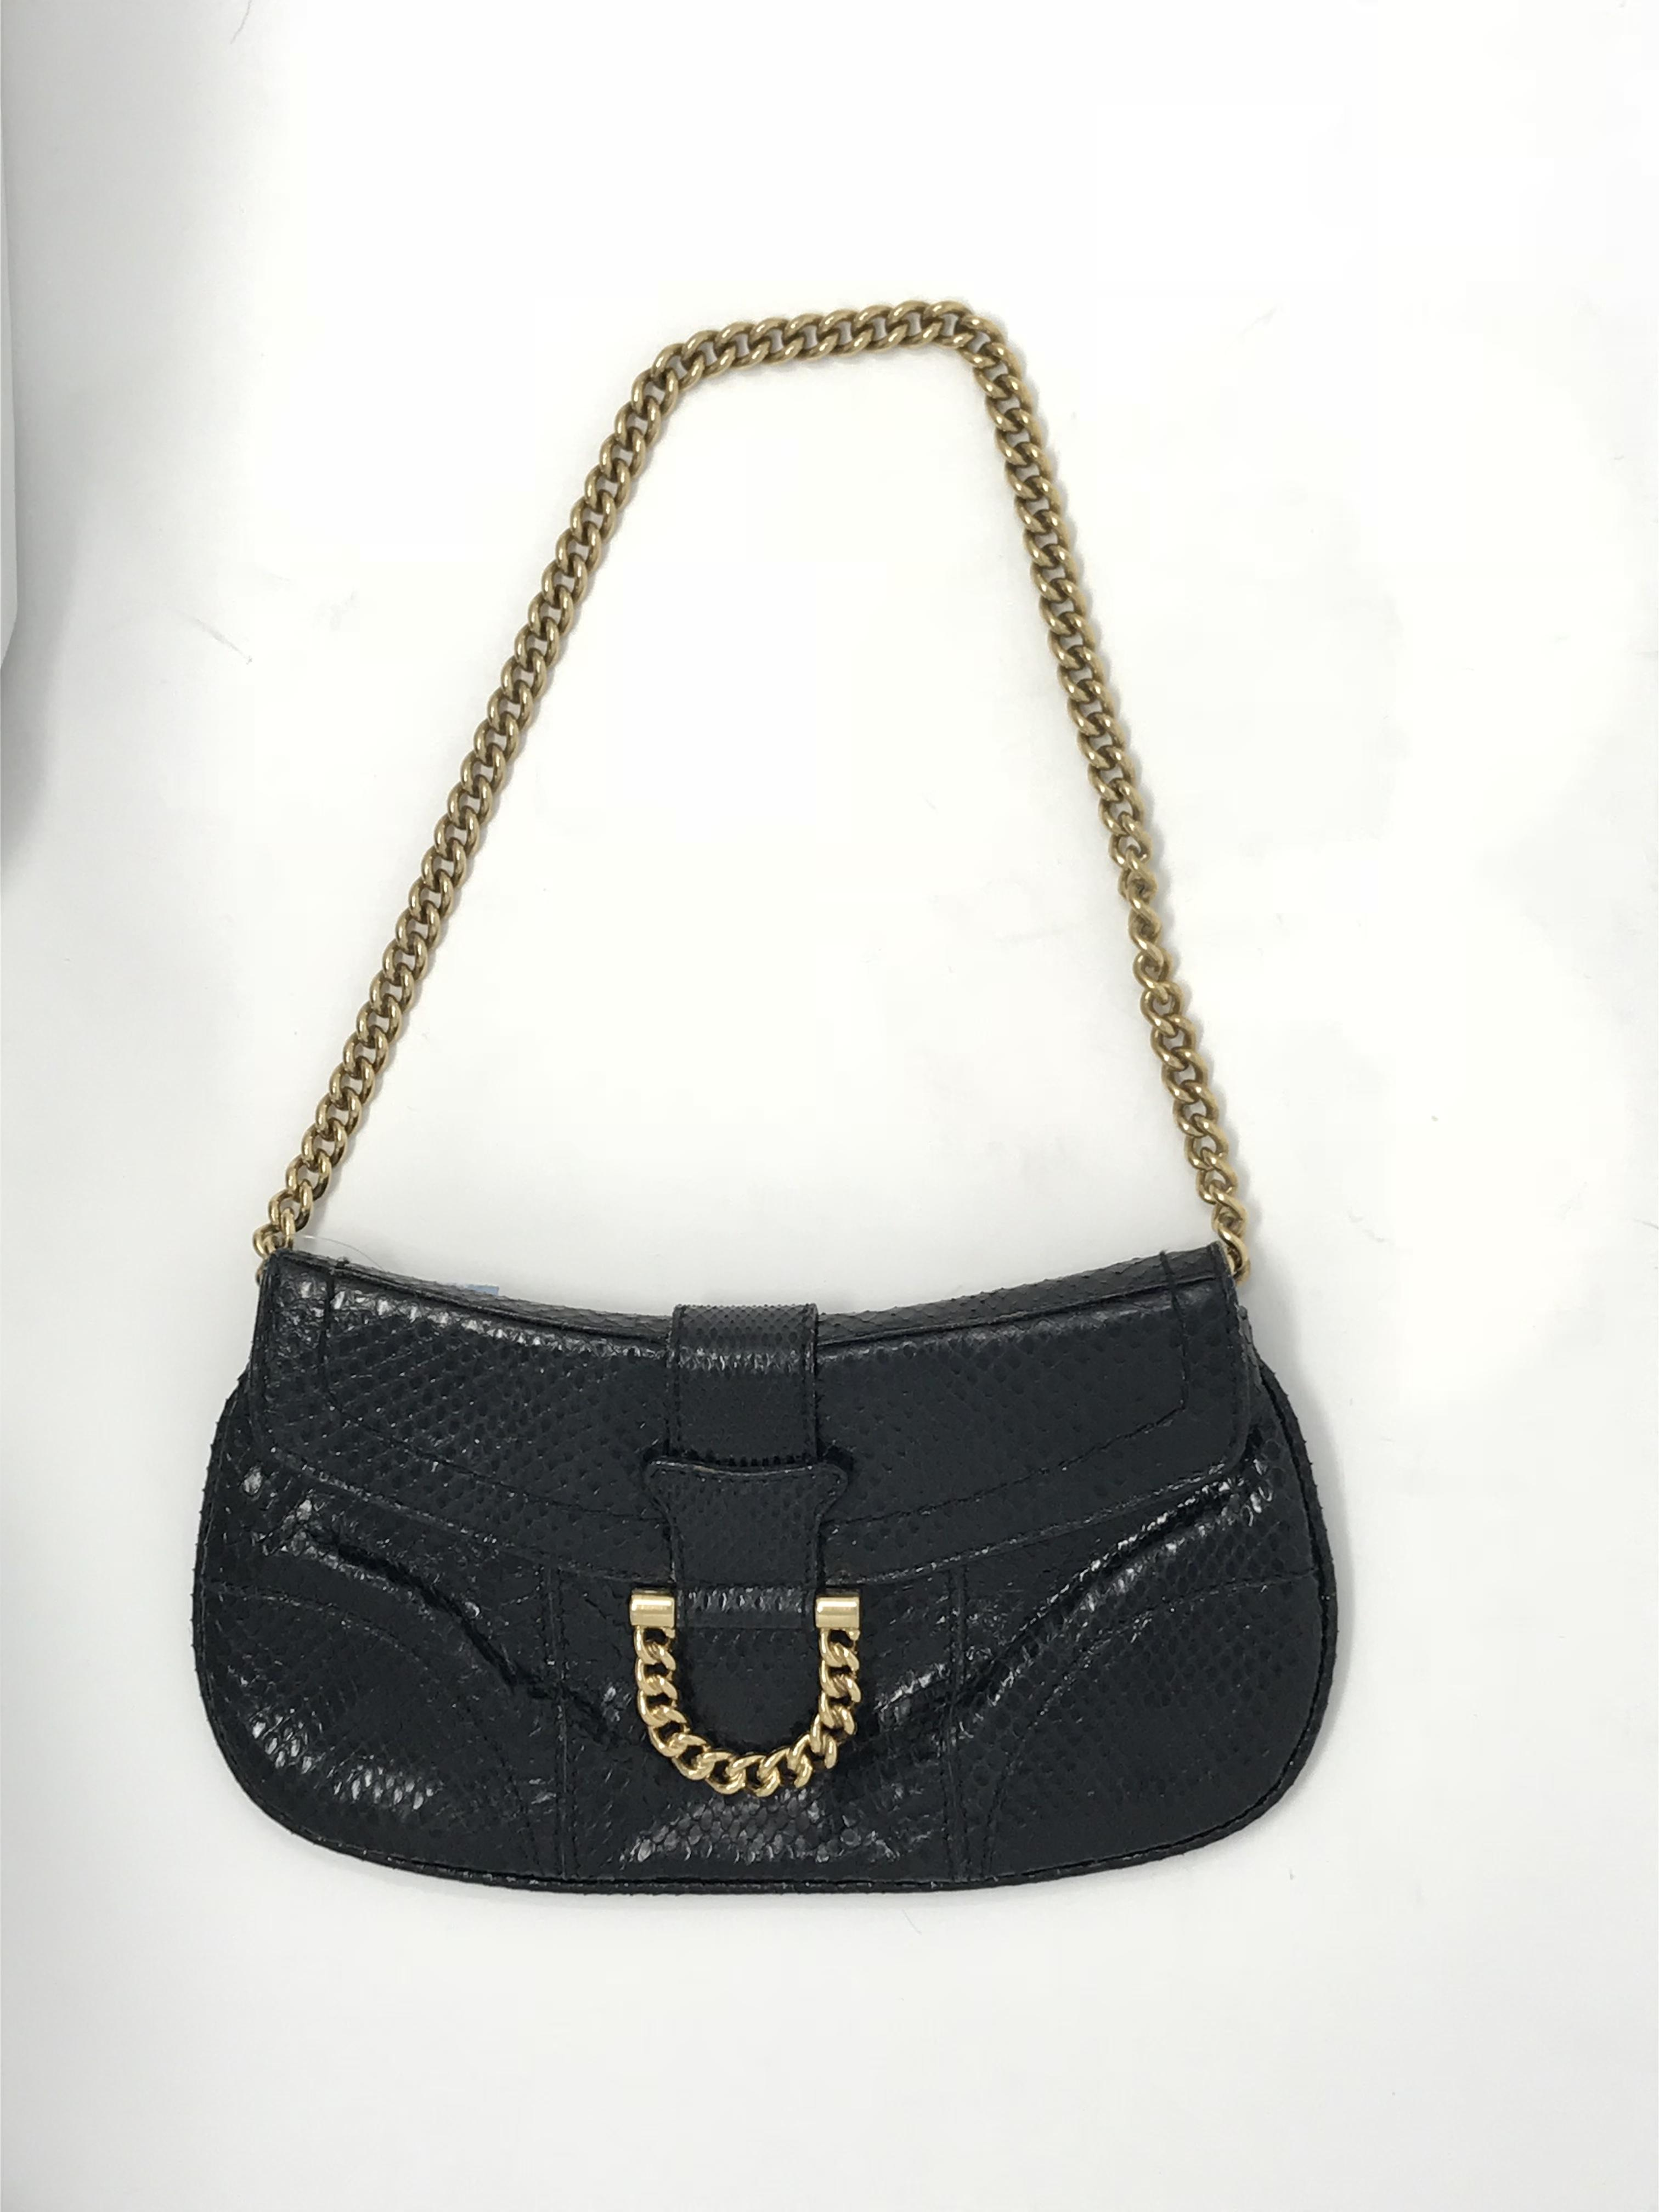 Dolce and Purses, Handbags Price: $236.99